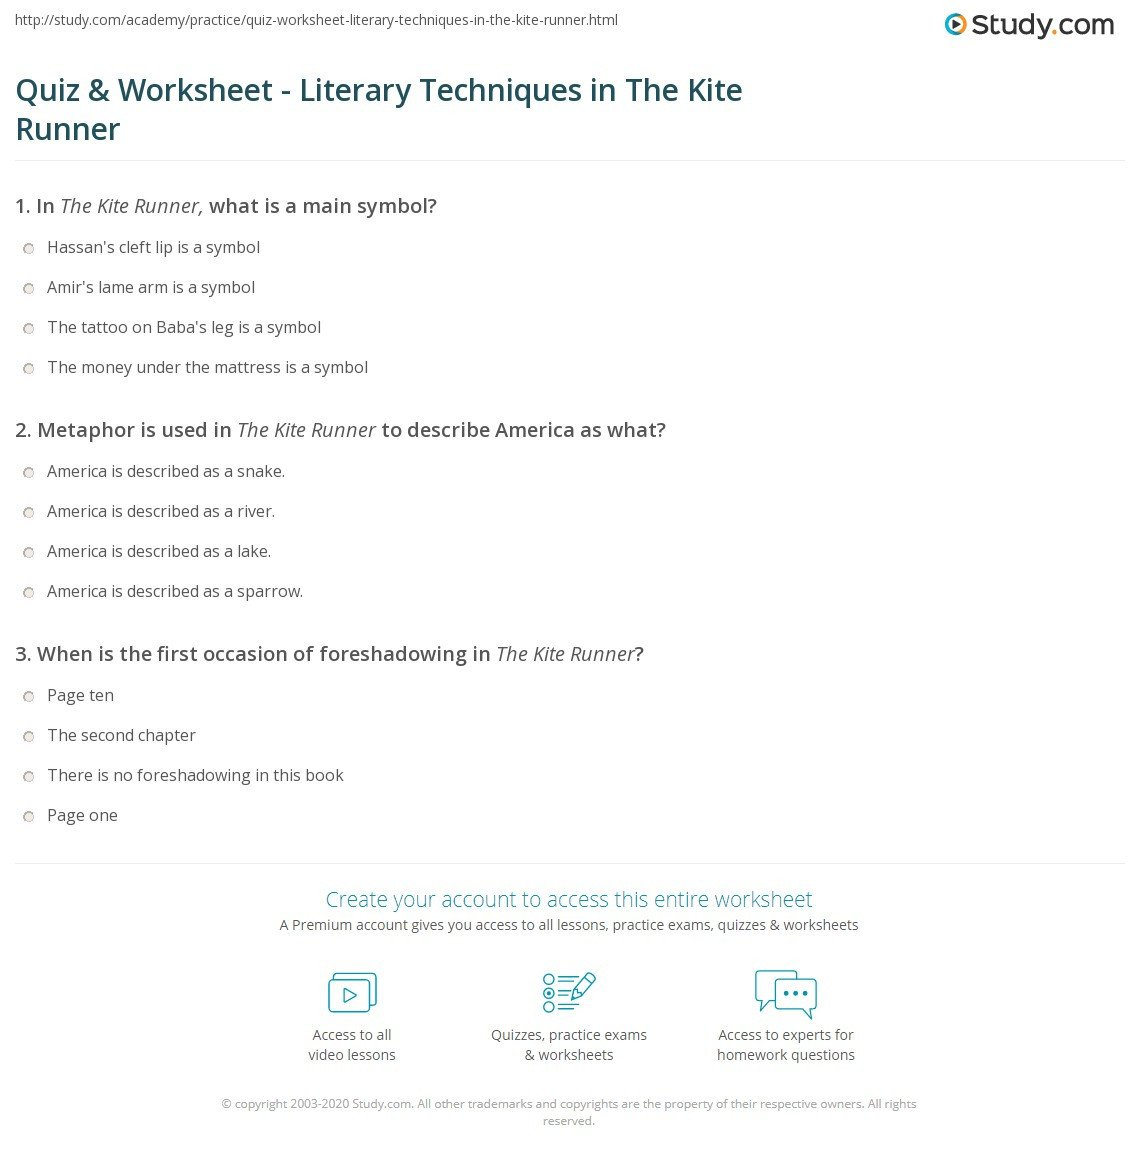 quiz worksheet literary techniques in the kite runner